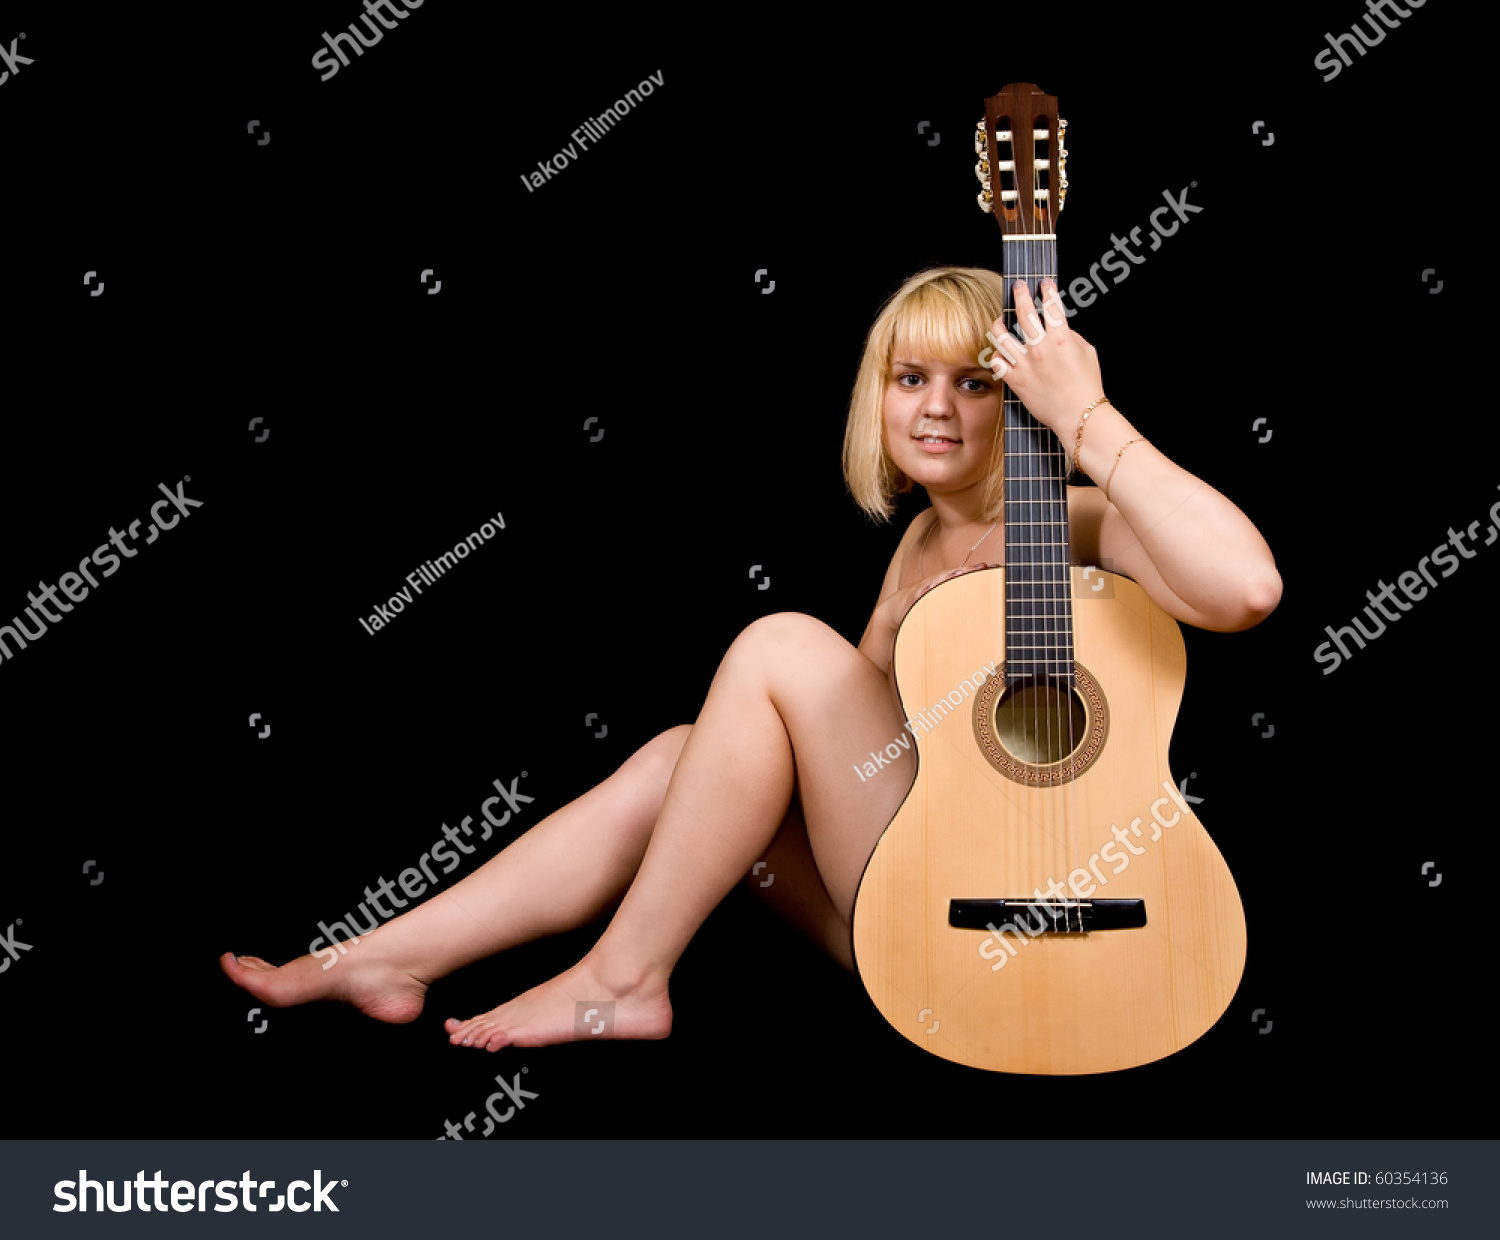 Nude Acoustic 16